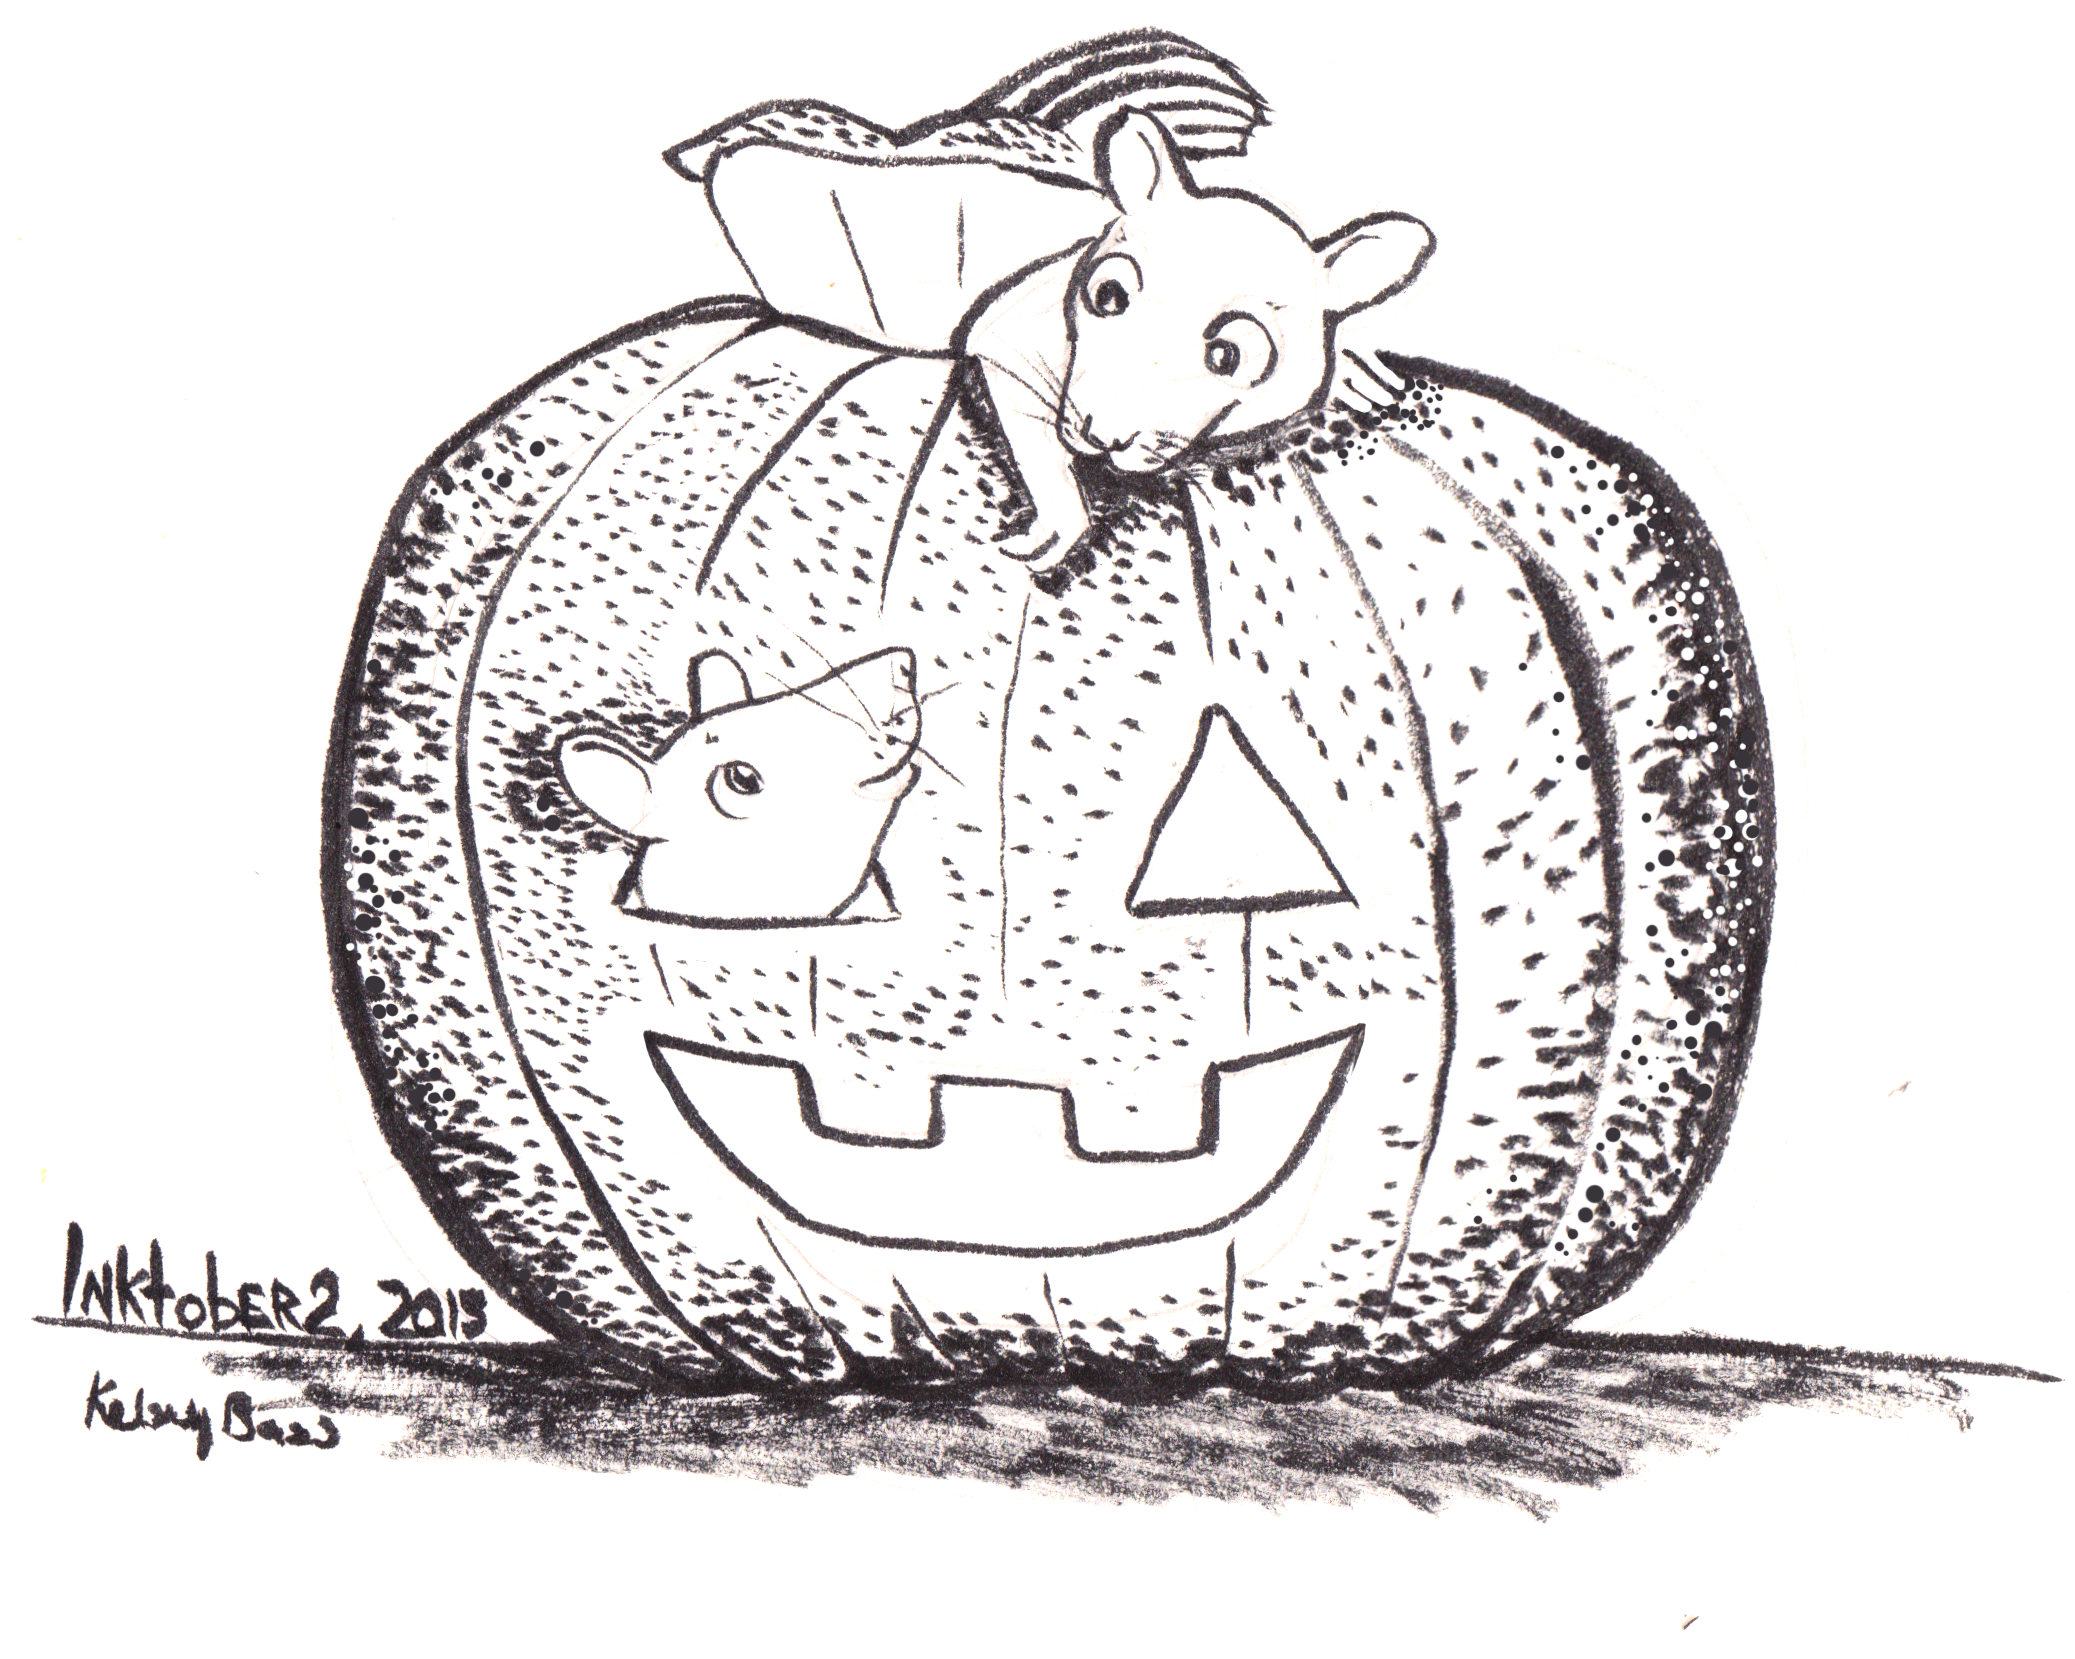 Inktober 2, 2015 I love Rats and Jack o' Lanterns. I use to have pets rats growing up, and they were amazing friendly pets. And I can't think about October without thinking about Pumpkins and Jack o' Lanterns.